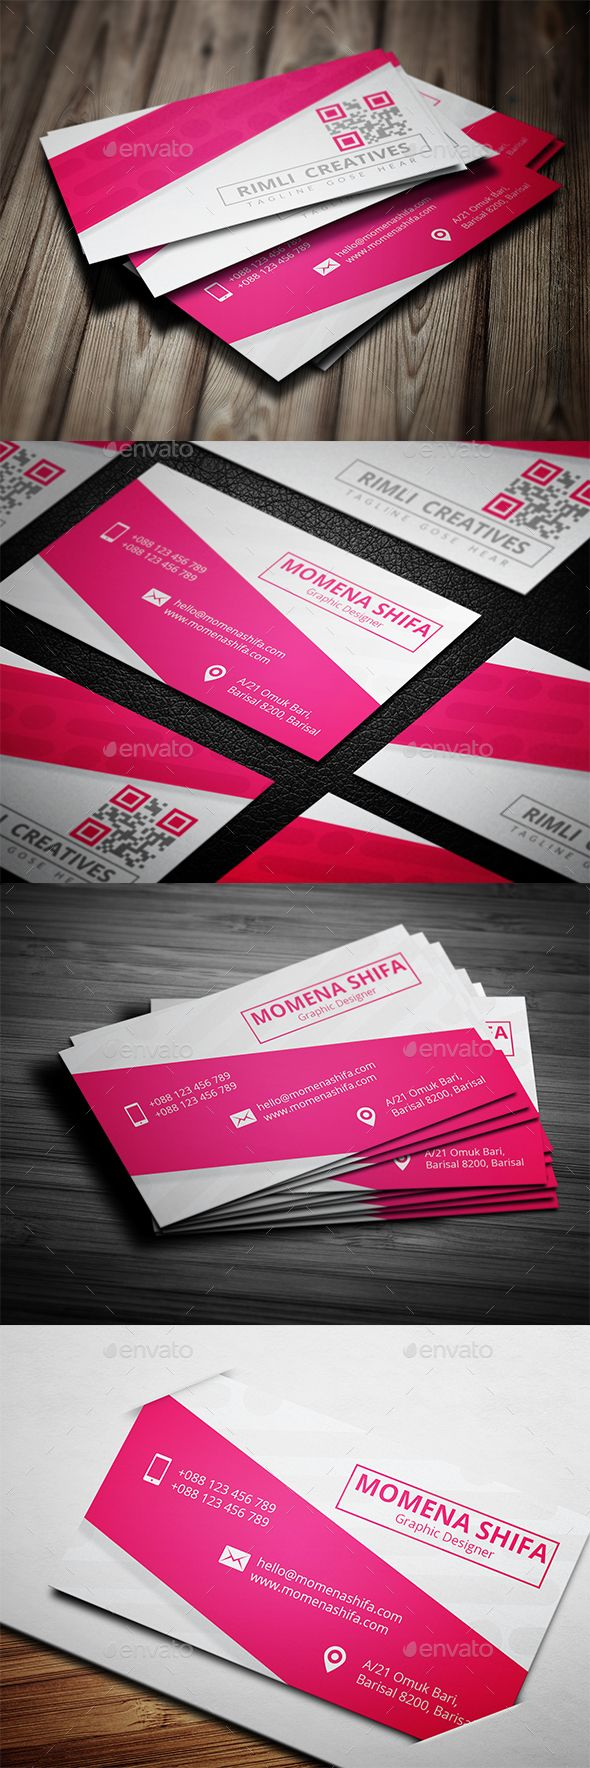 Clean Business Card Template PSD Business Card Templates - Awesome business cards templates